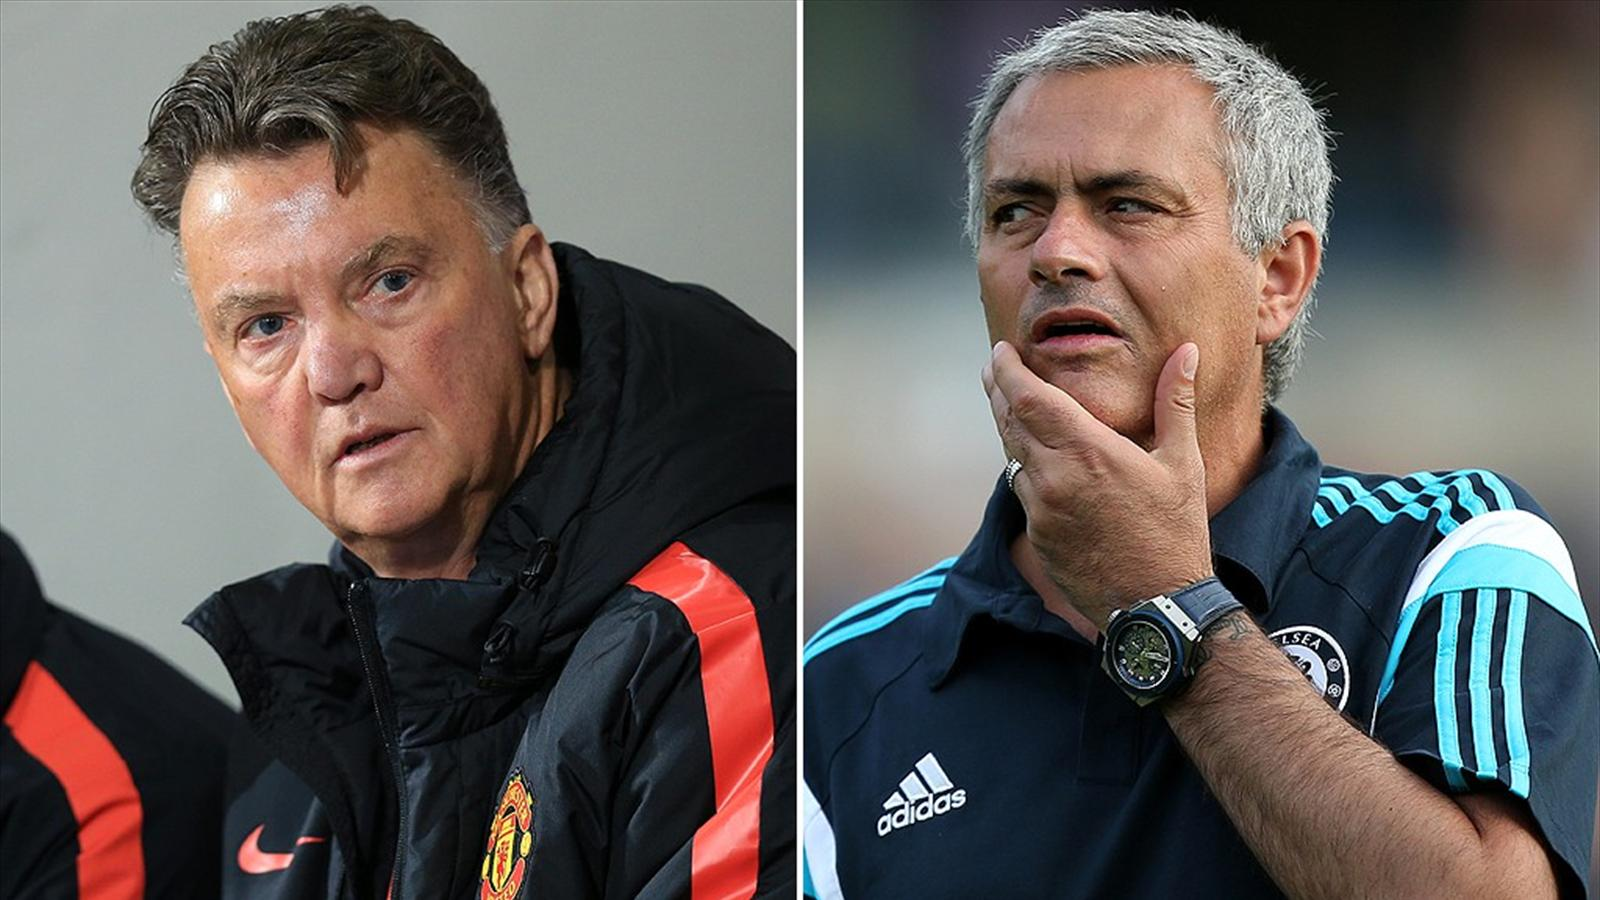 Paul Parker: Manchester United are broken, but getting Jose Mourinho to fix it would be a disaster